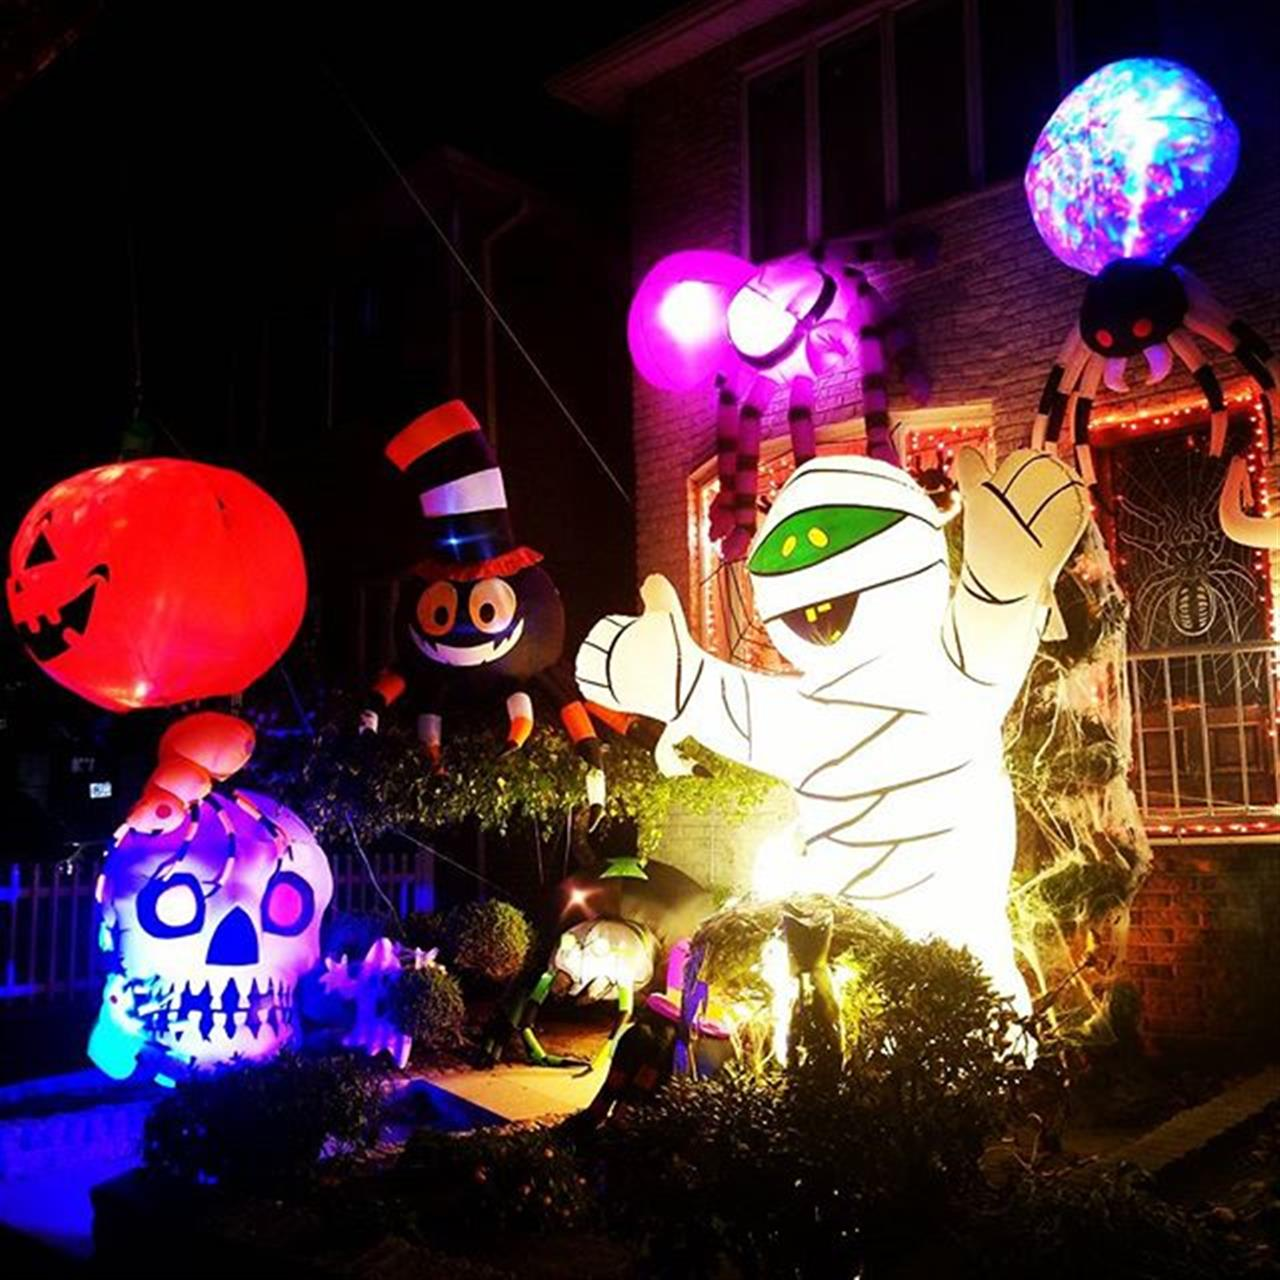 How will you be decorating your house this Halloween? ???? #dykerfrights #spooky #halloweenspirit ?Halloween #home in #dykerheights  #trickortreat #halloween #leadingrelocal